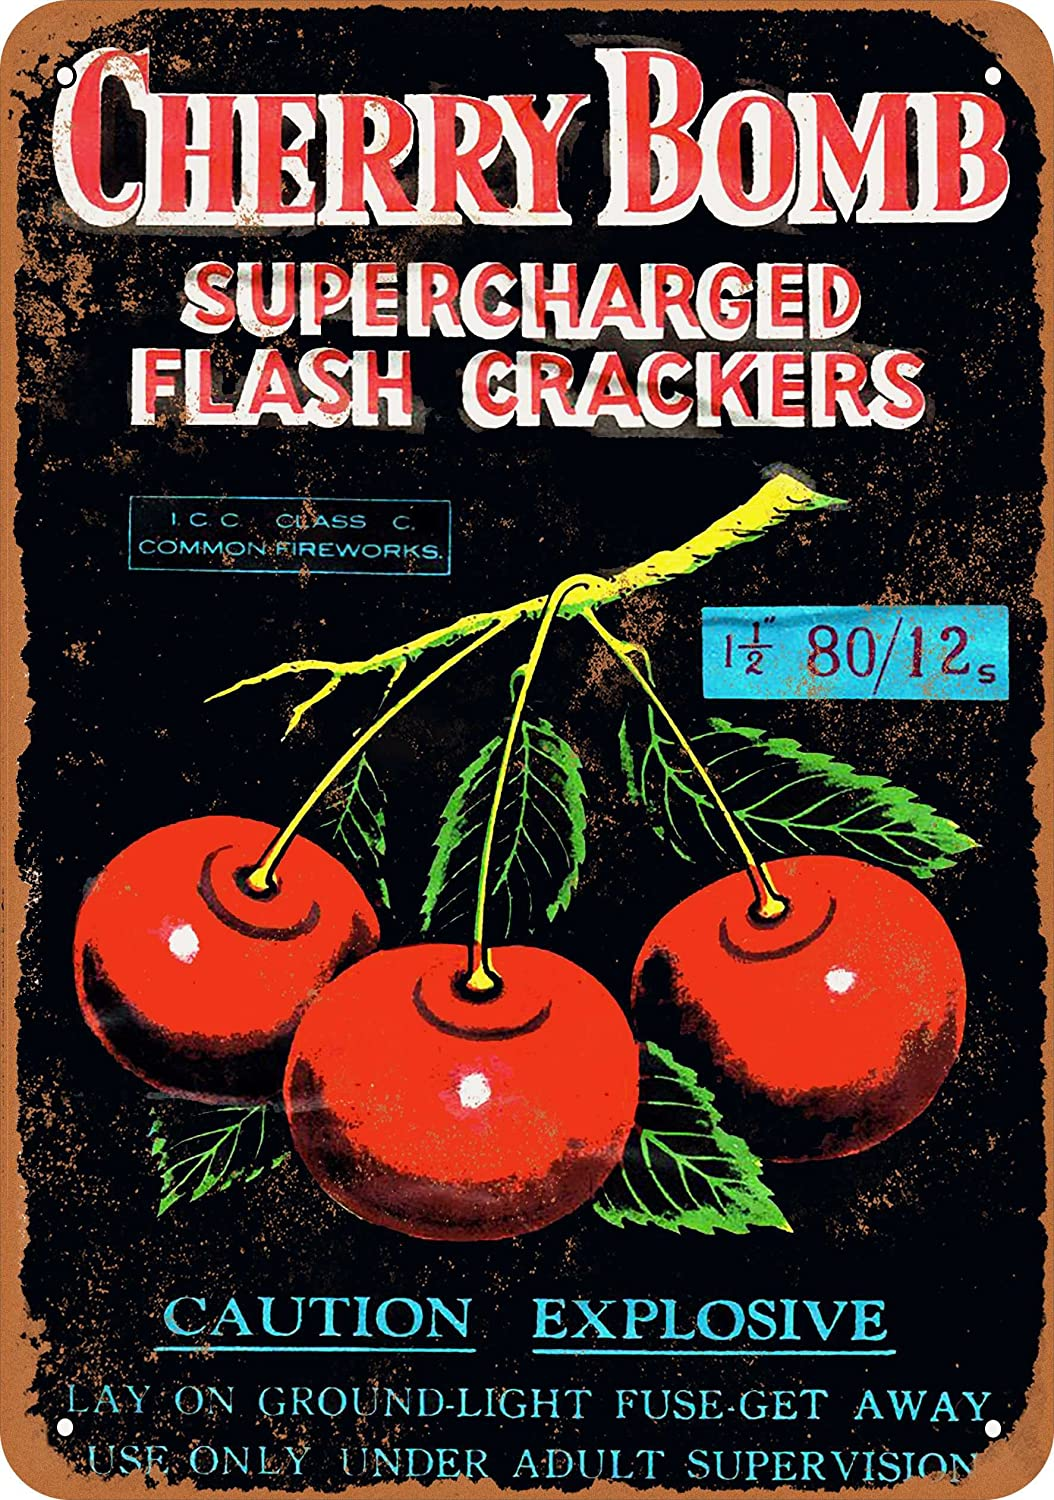 Cherry Bomb Supercharged Firecrackers Vintage Look Wall-Color 7 x 10 Metal Sign